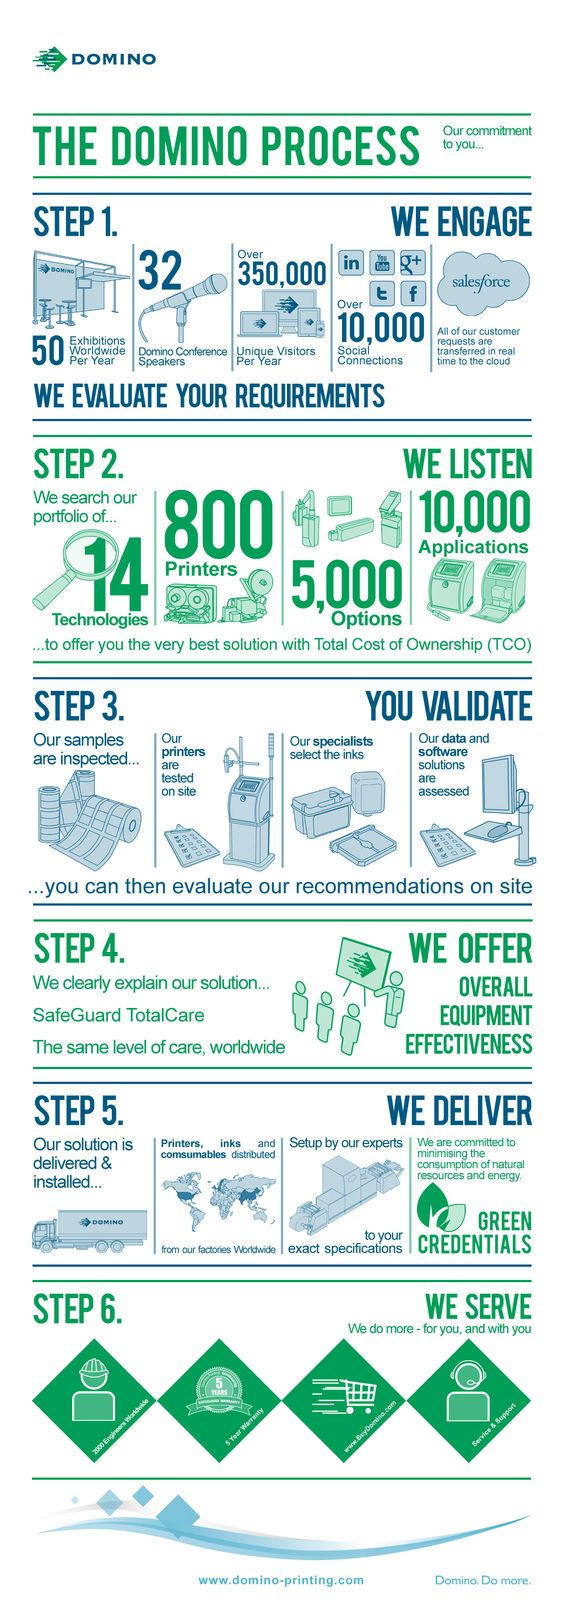 The Domino Process Infographic - Our commitment to you - We engage, We listen, You validate, We offer, We deliver, We serve. We do more - for you, and with you